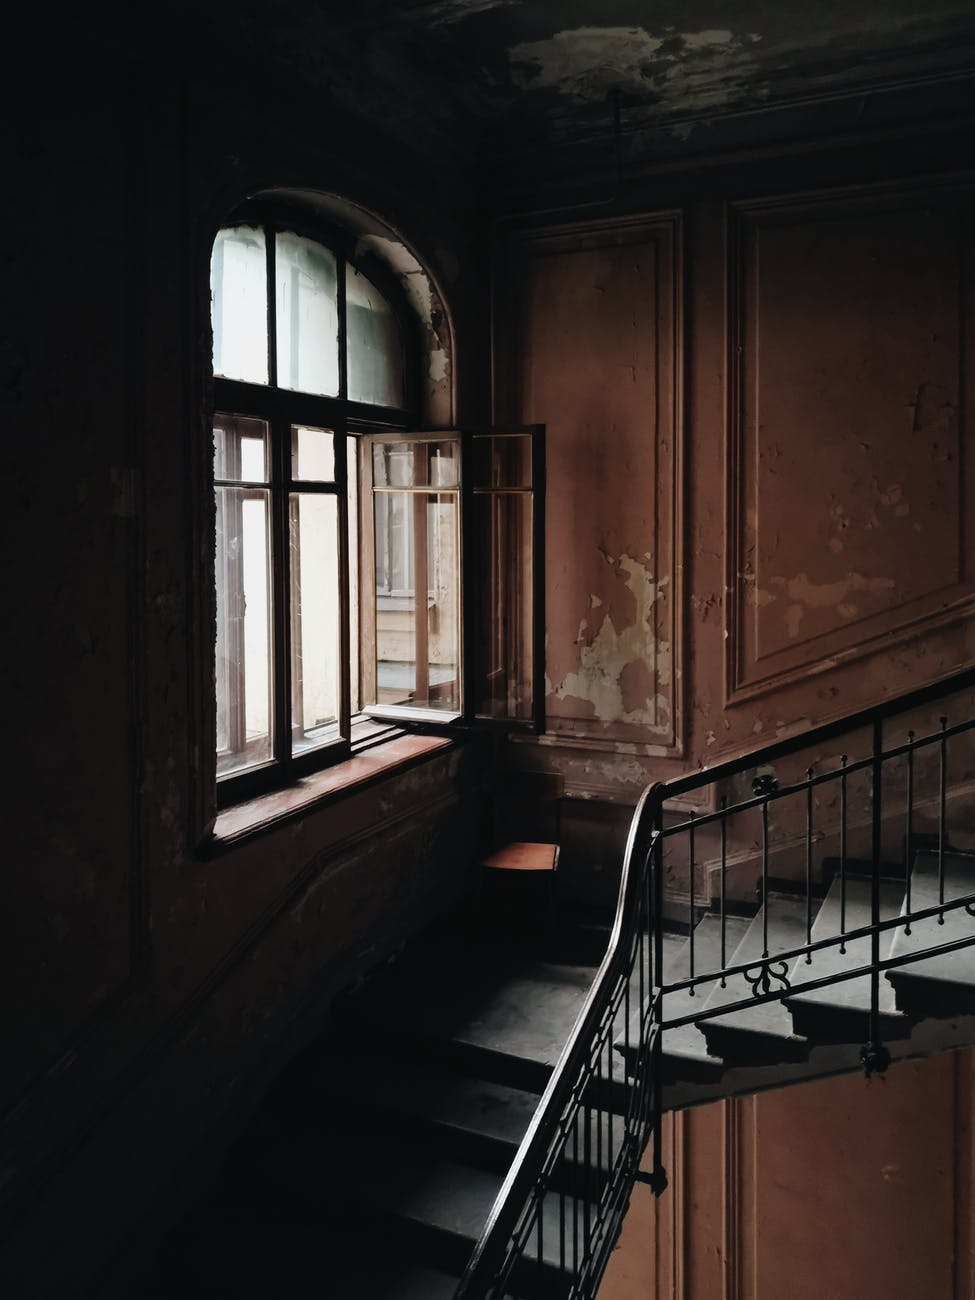 electrical inspection in older buildings